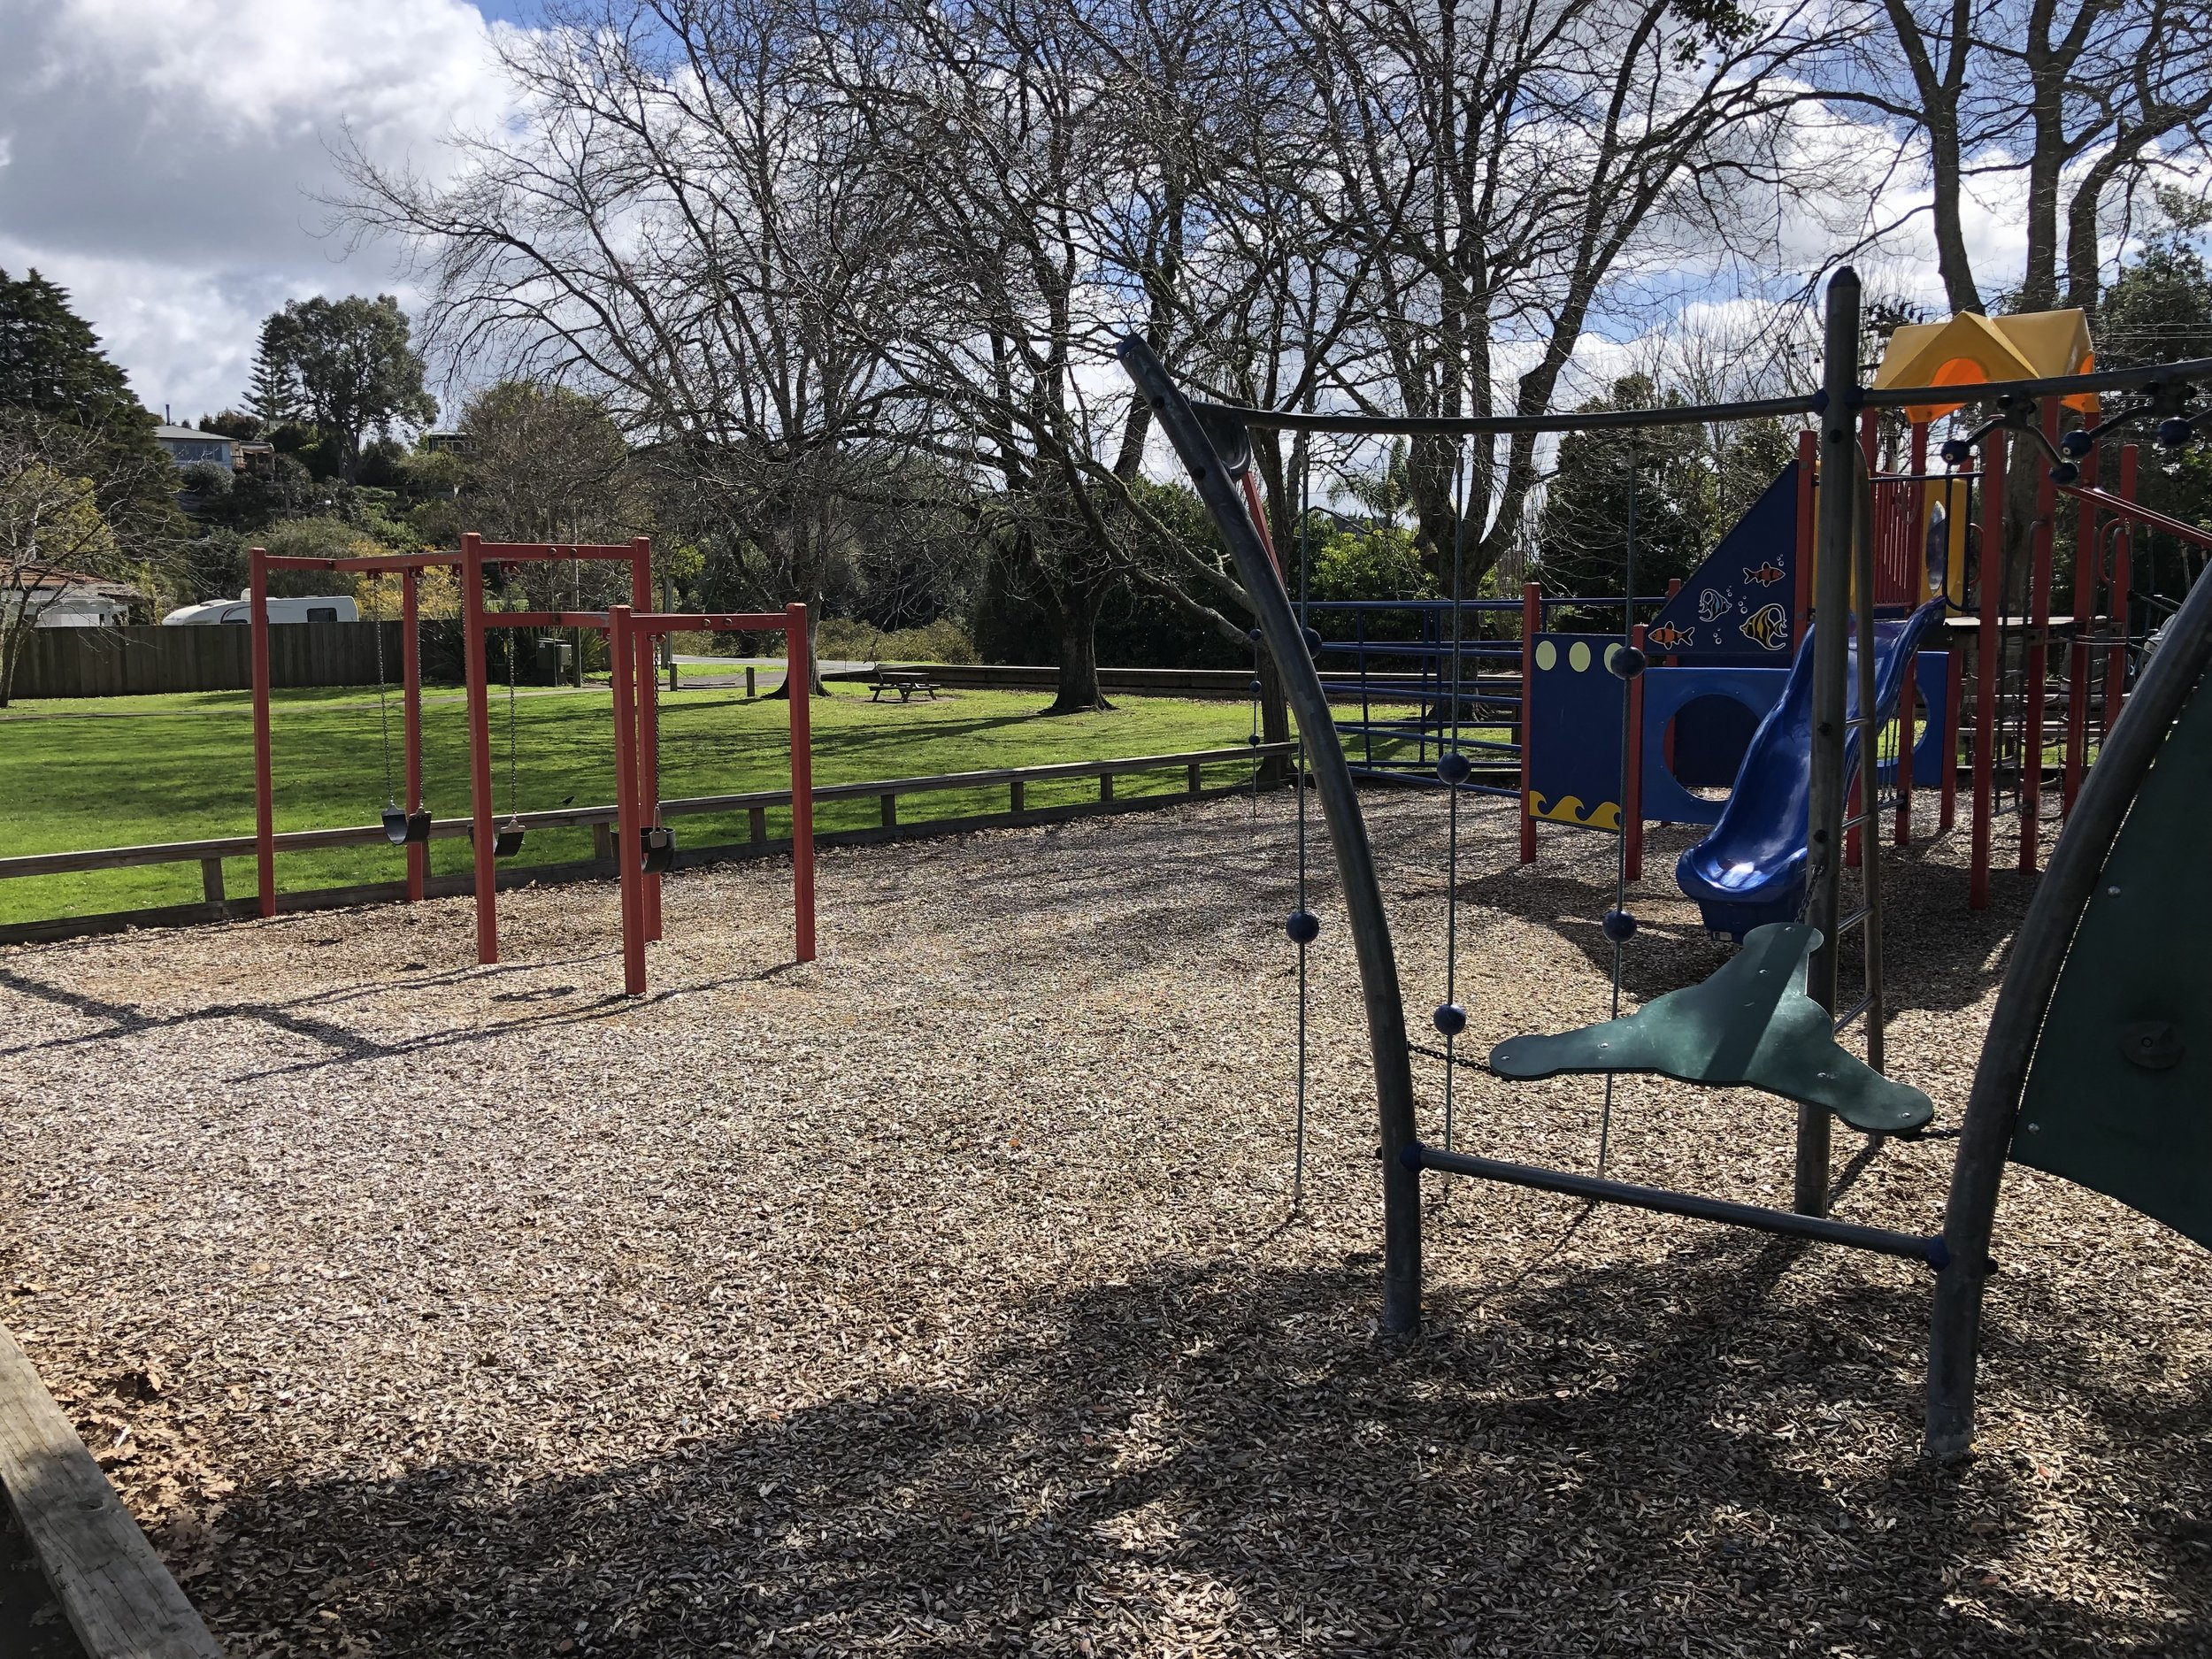 Stillwater Reserve Playground. Click to enlarge image.